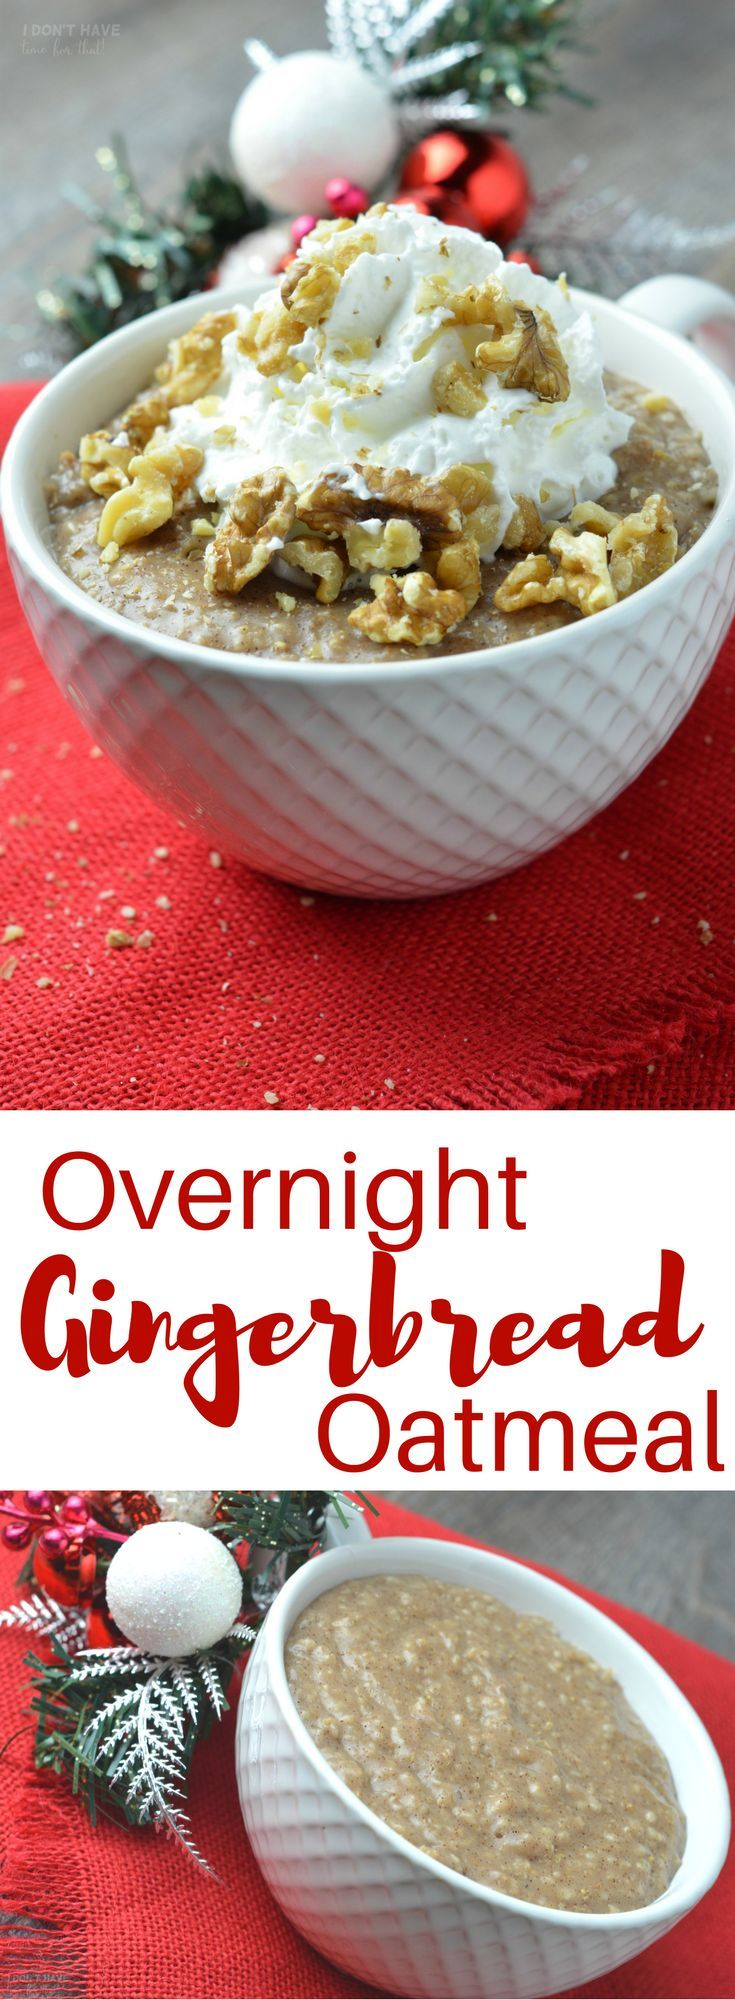 Worlds easiest (and cheapest!) Christmas morning breakfast - Overnight Gingerbread Oatmeal /savealot/ #AD #holidaysmadeeasy #savealotinsiders